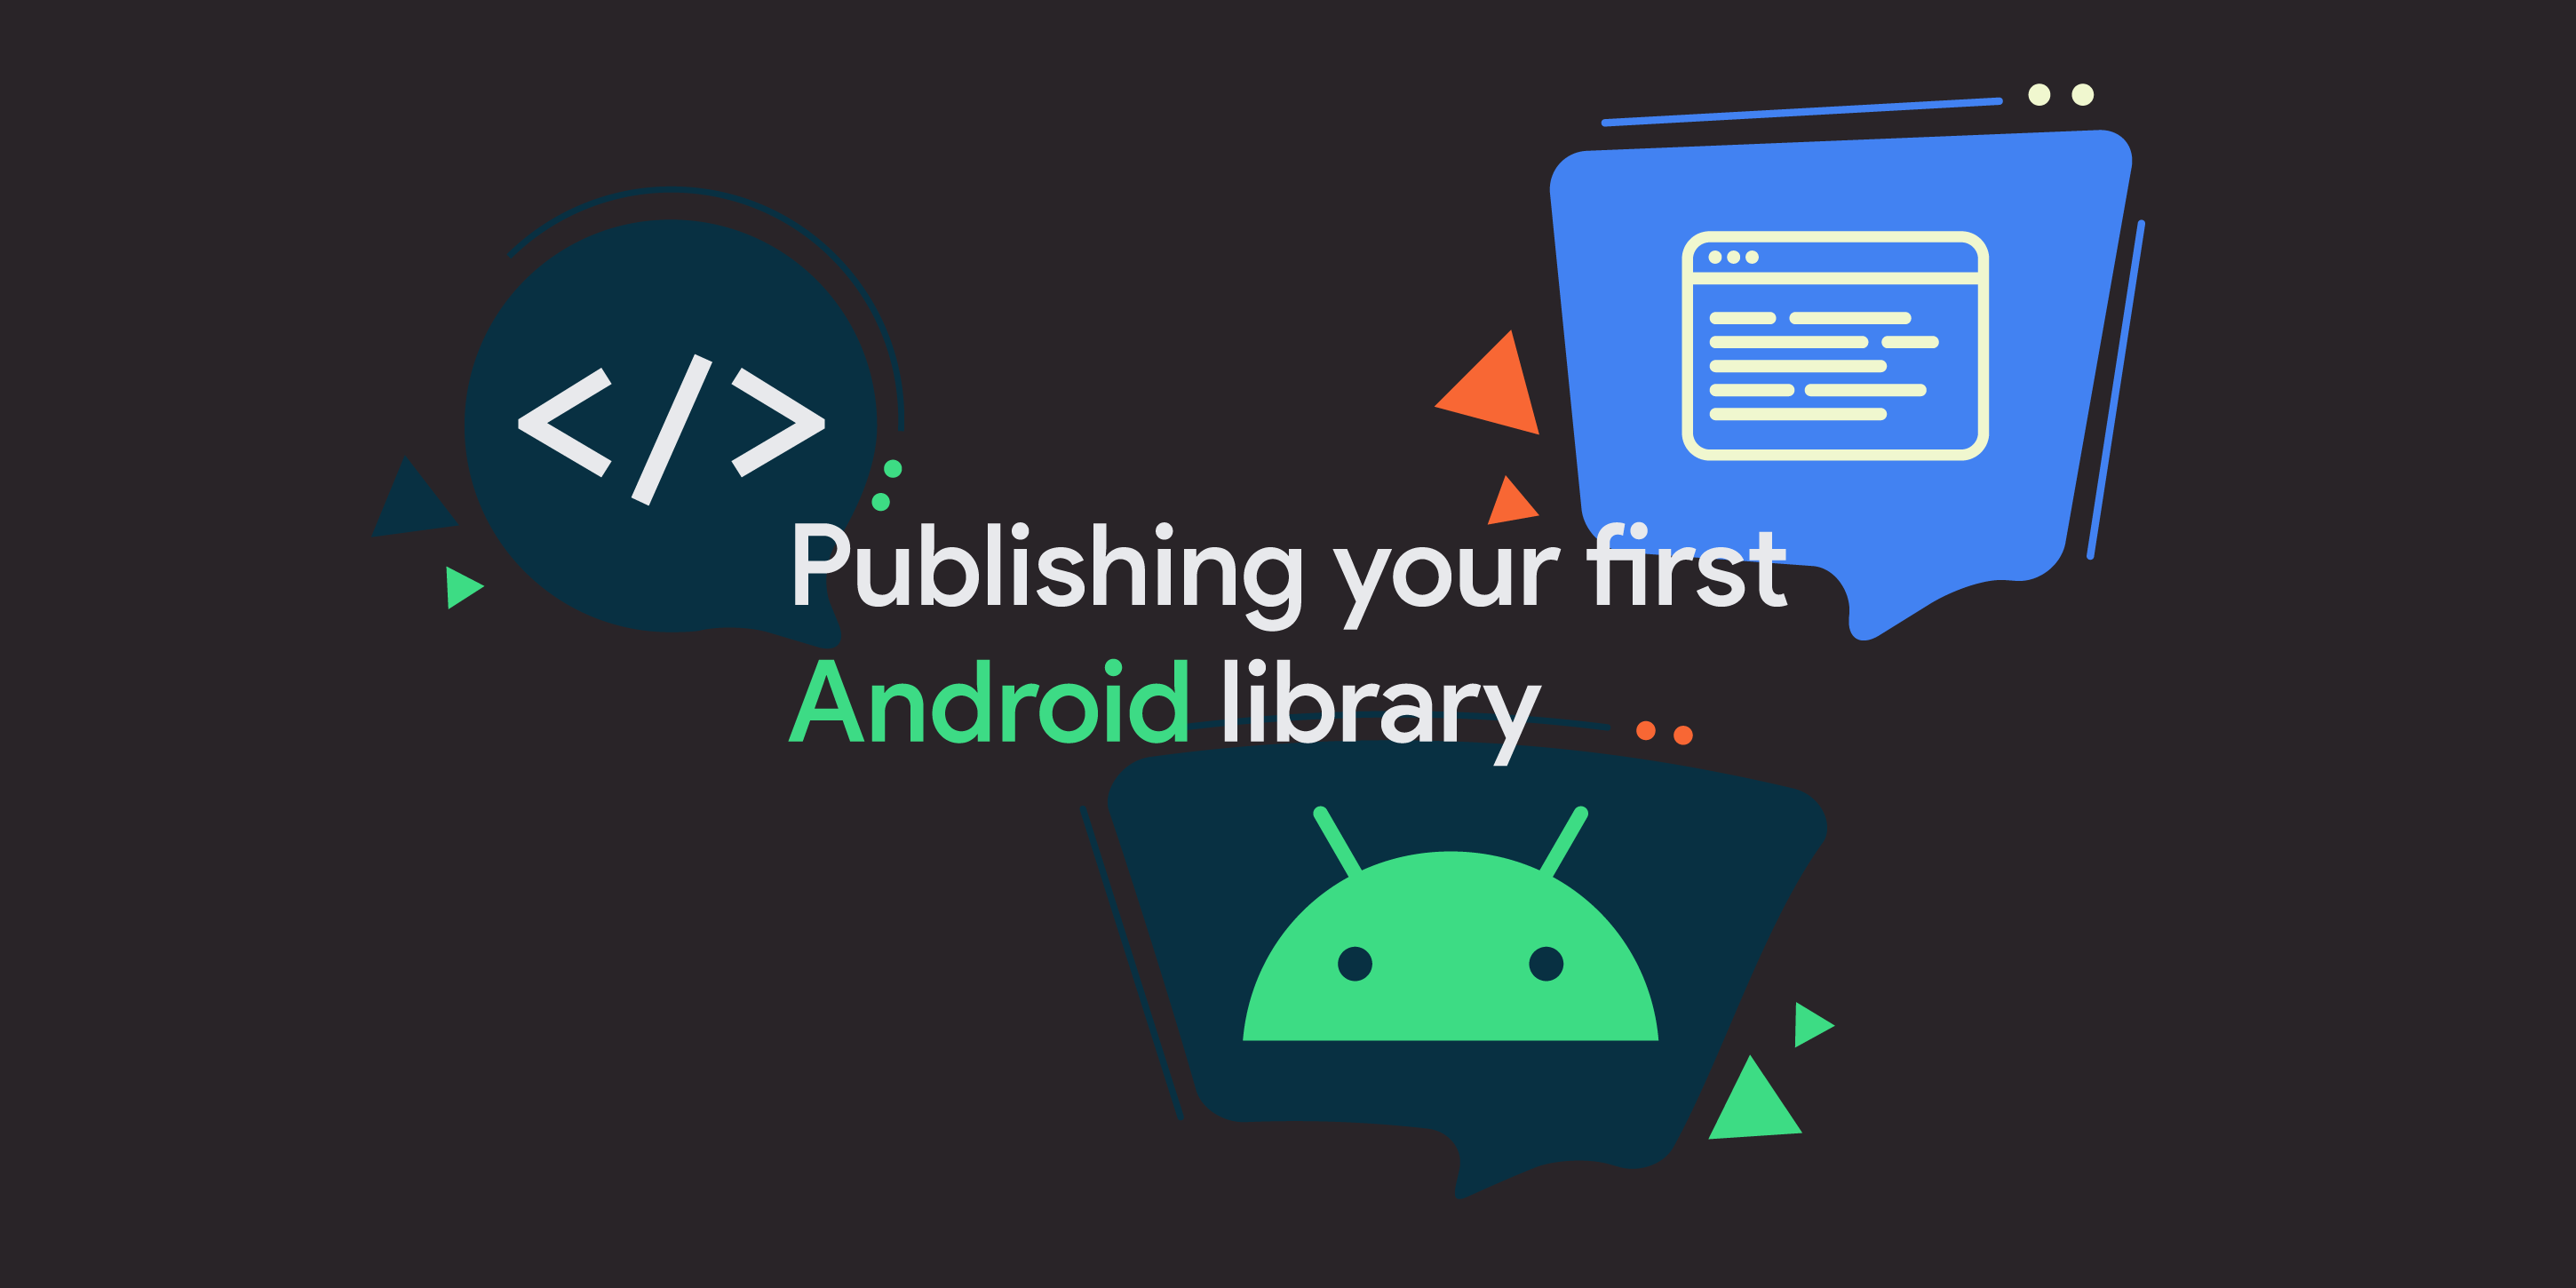 Publishing your first Android library to MavenCentral